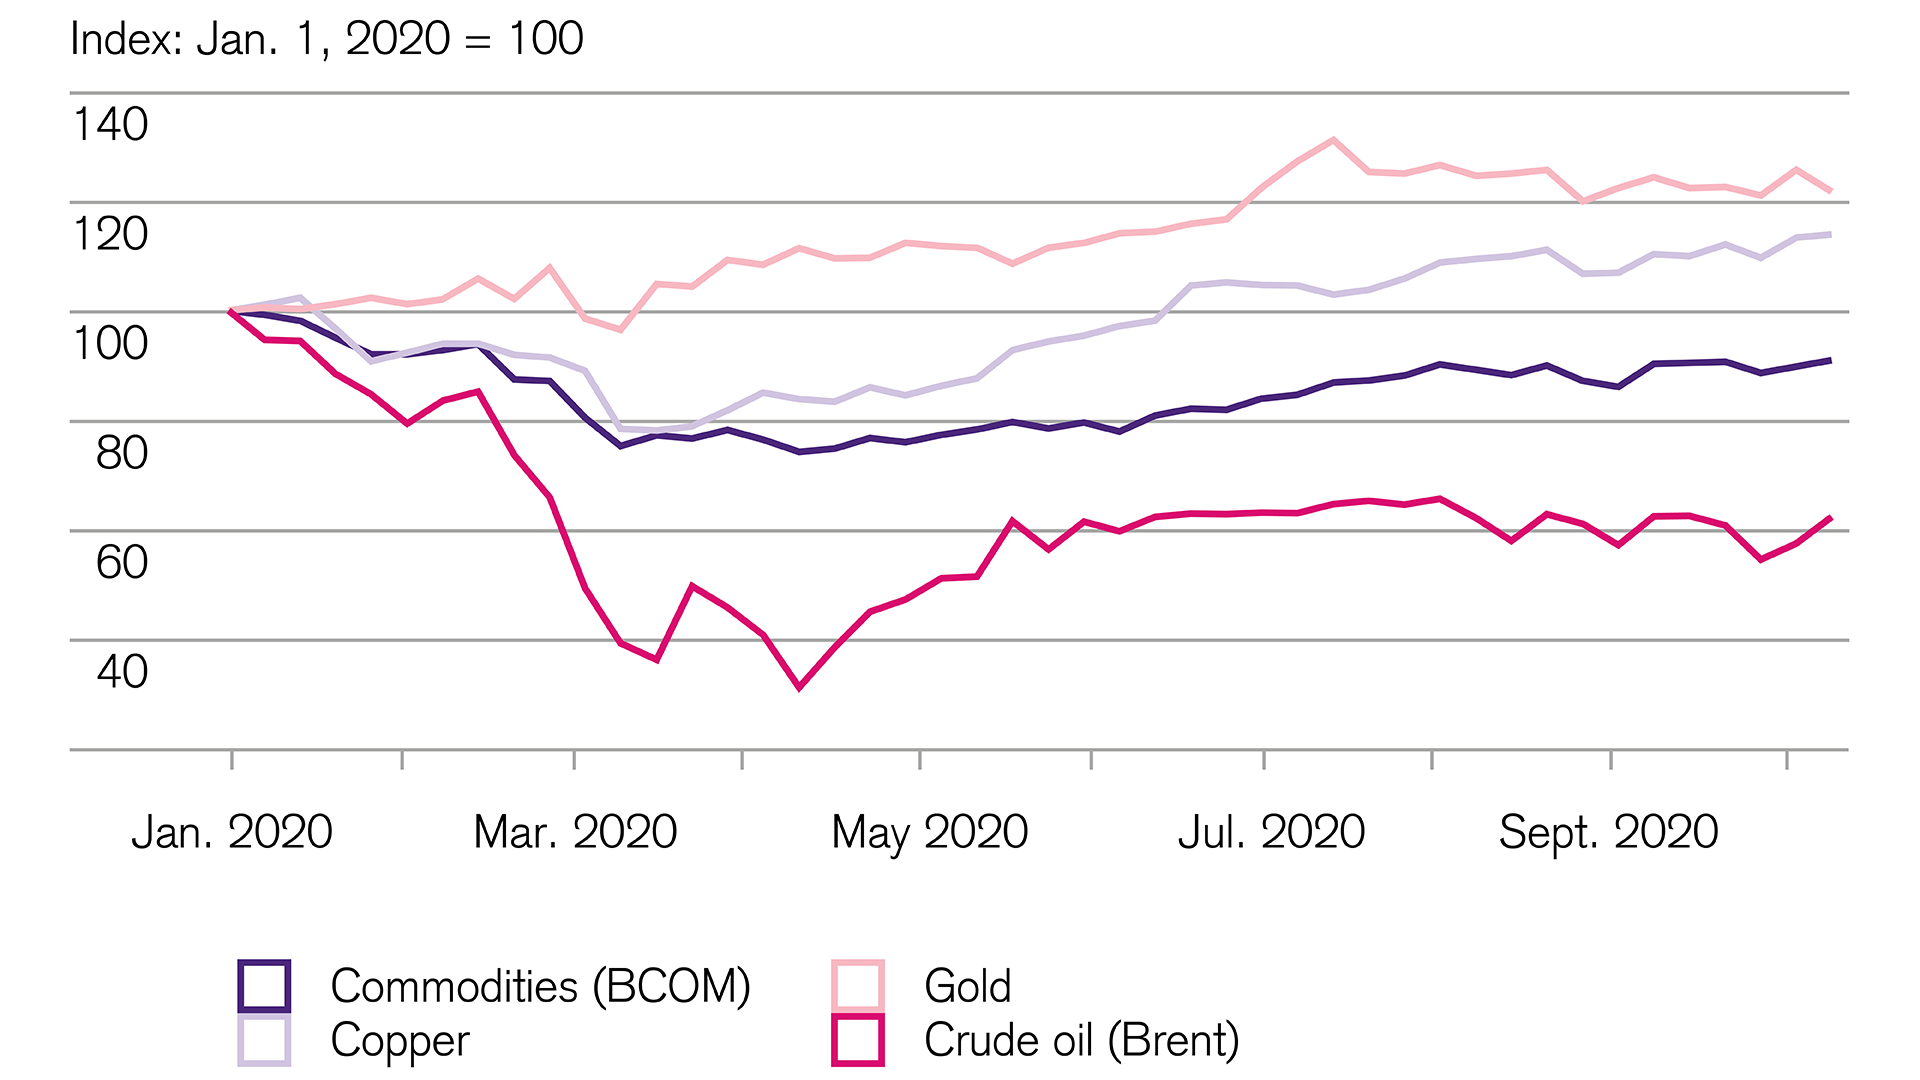 Investing: Positive trend in commodities